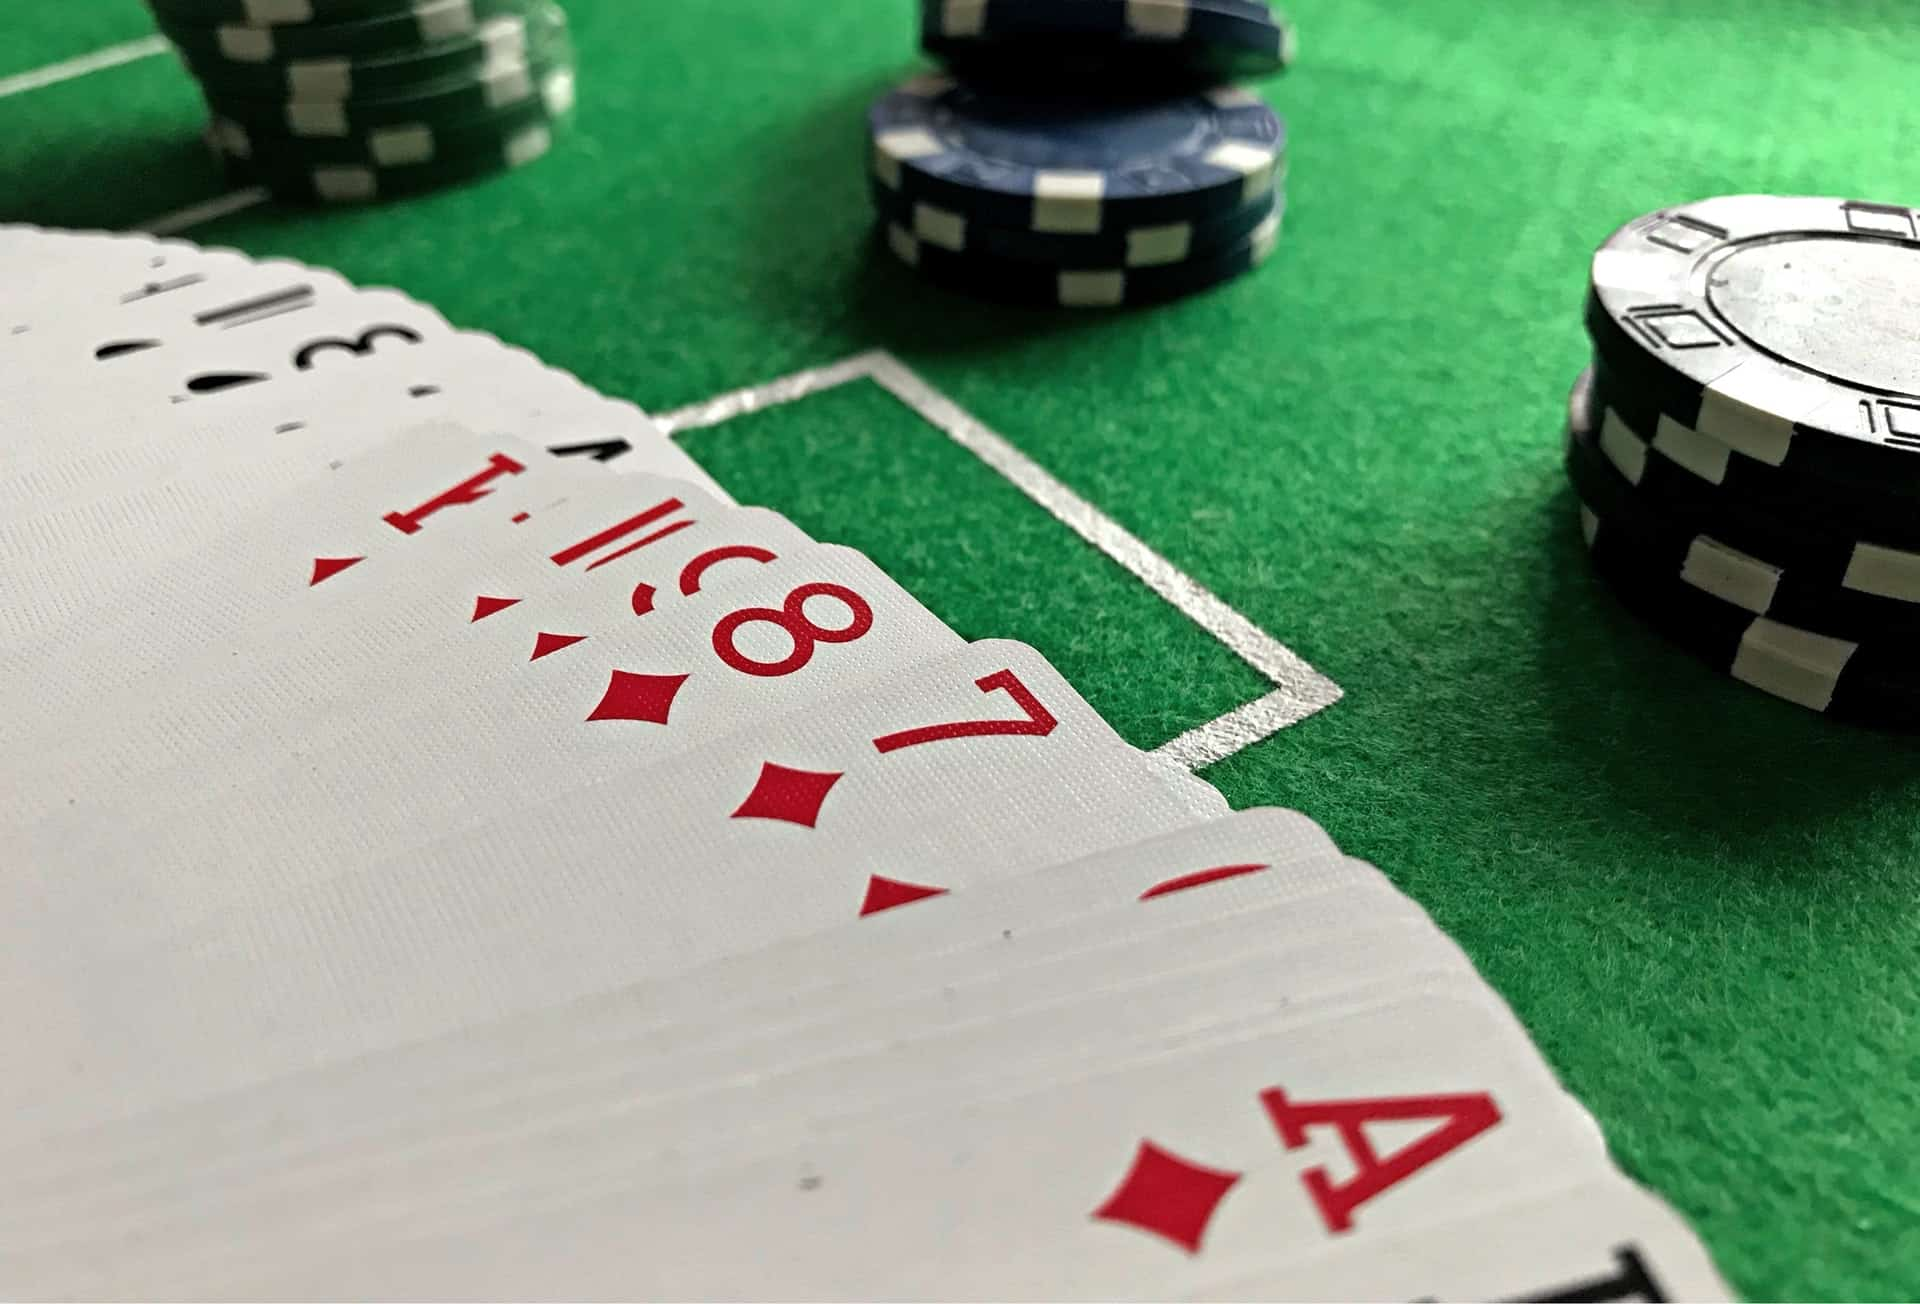 tablegameswithchips - Popular Games the use Casino Chips